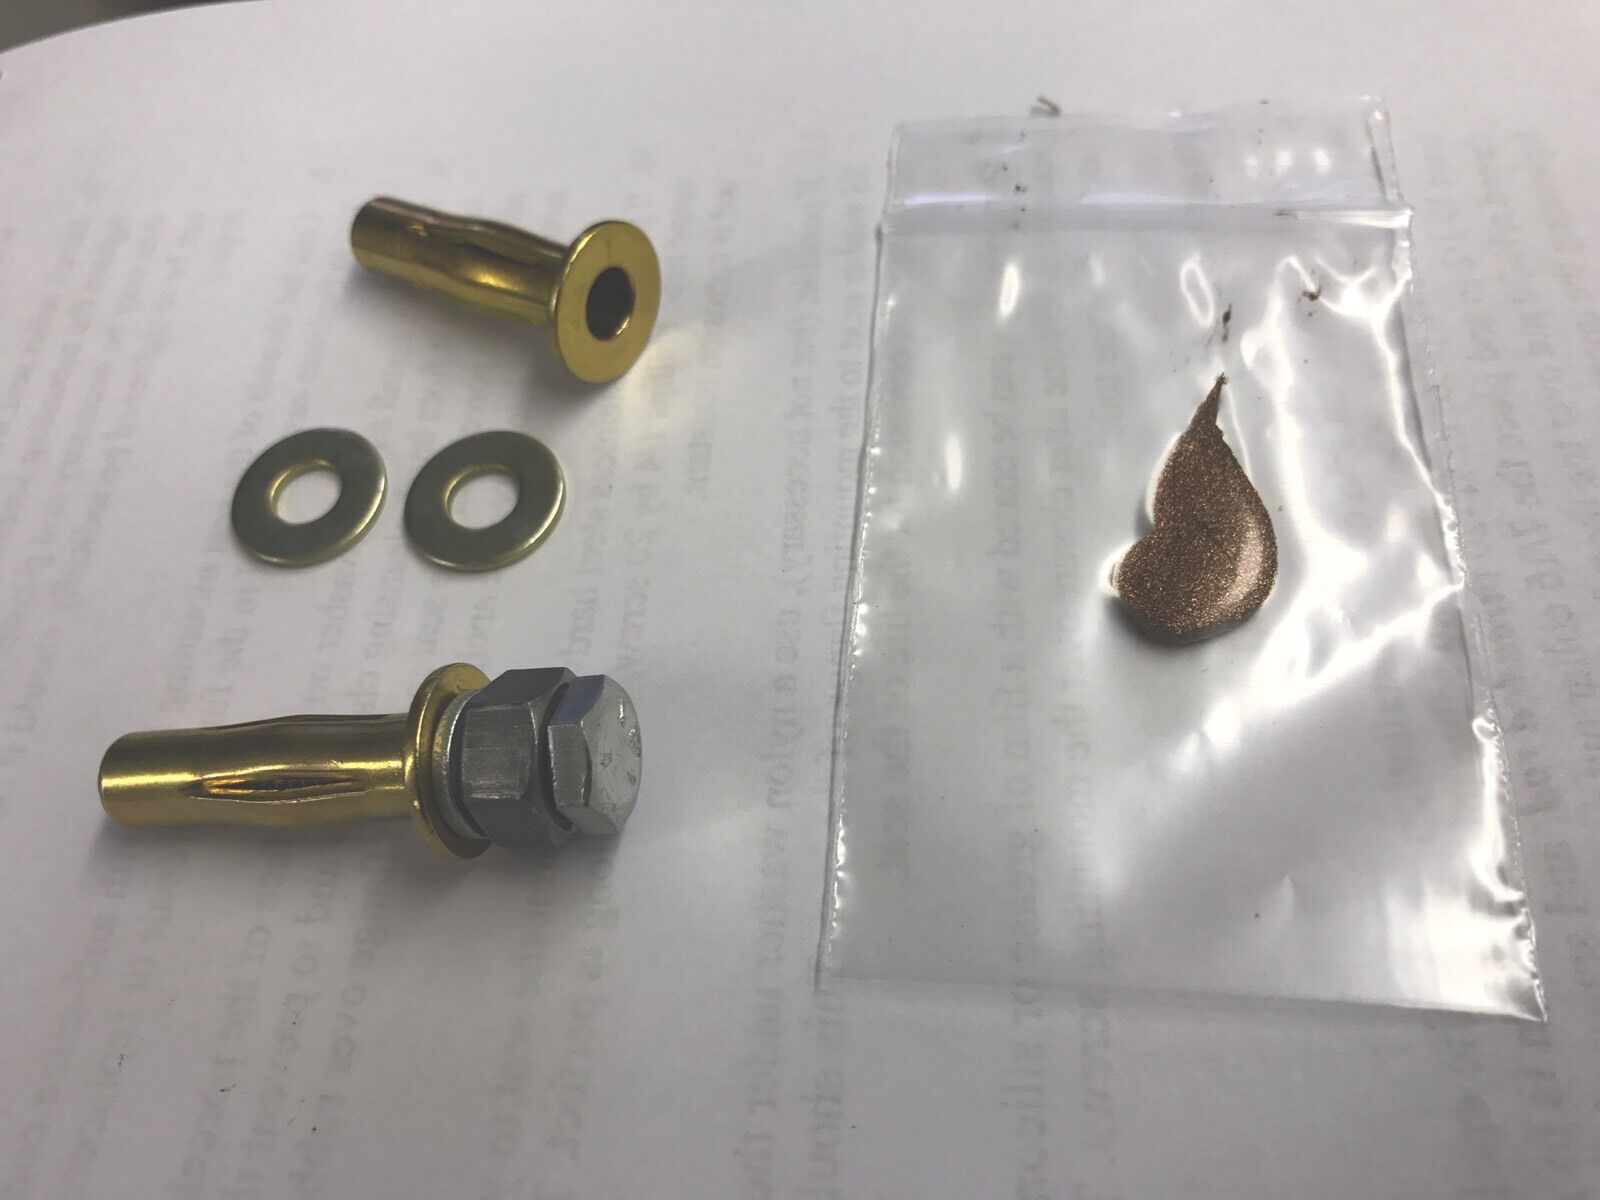 Kohler Seat Anchor Nut Kit For One Piece Toilet All Hardware Included Ebay